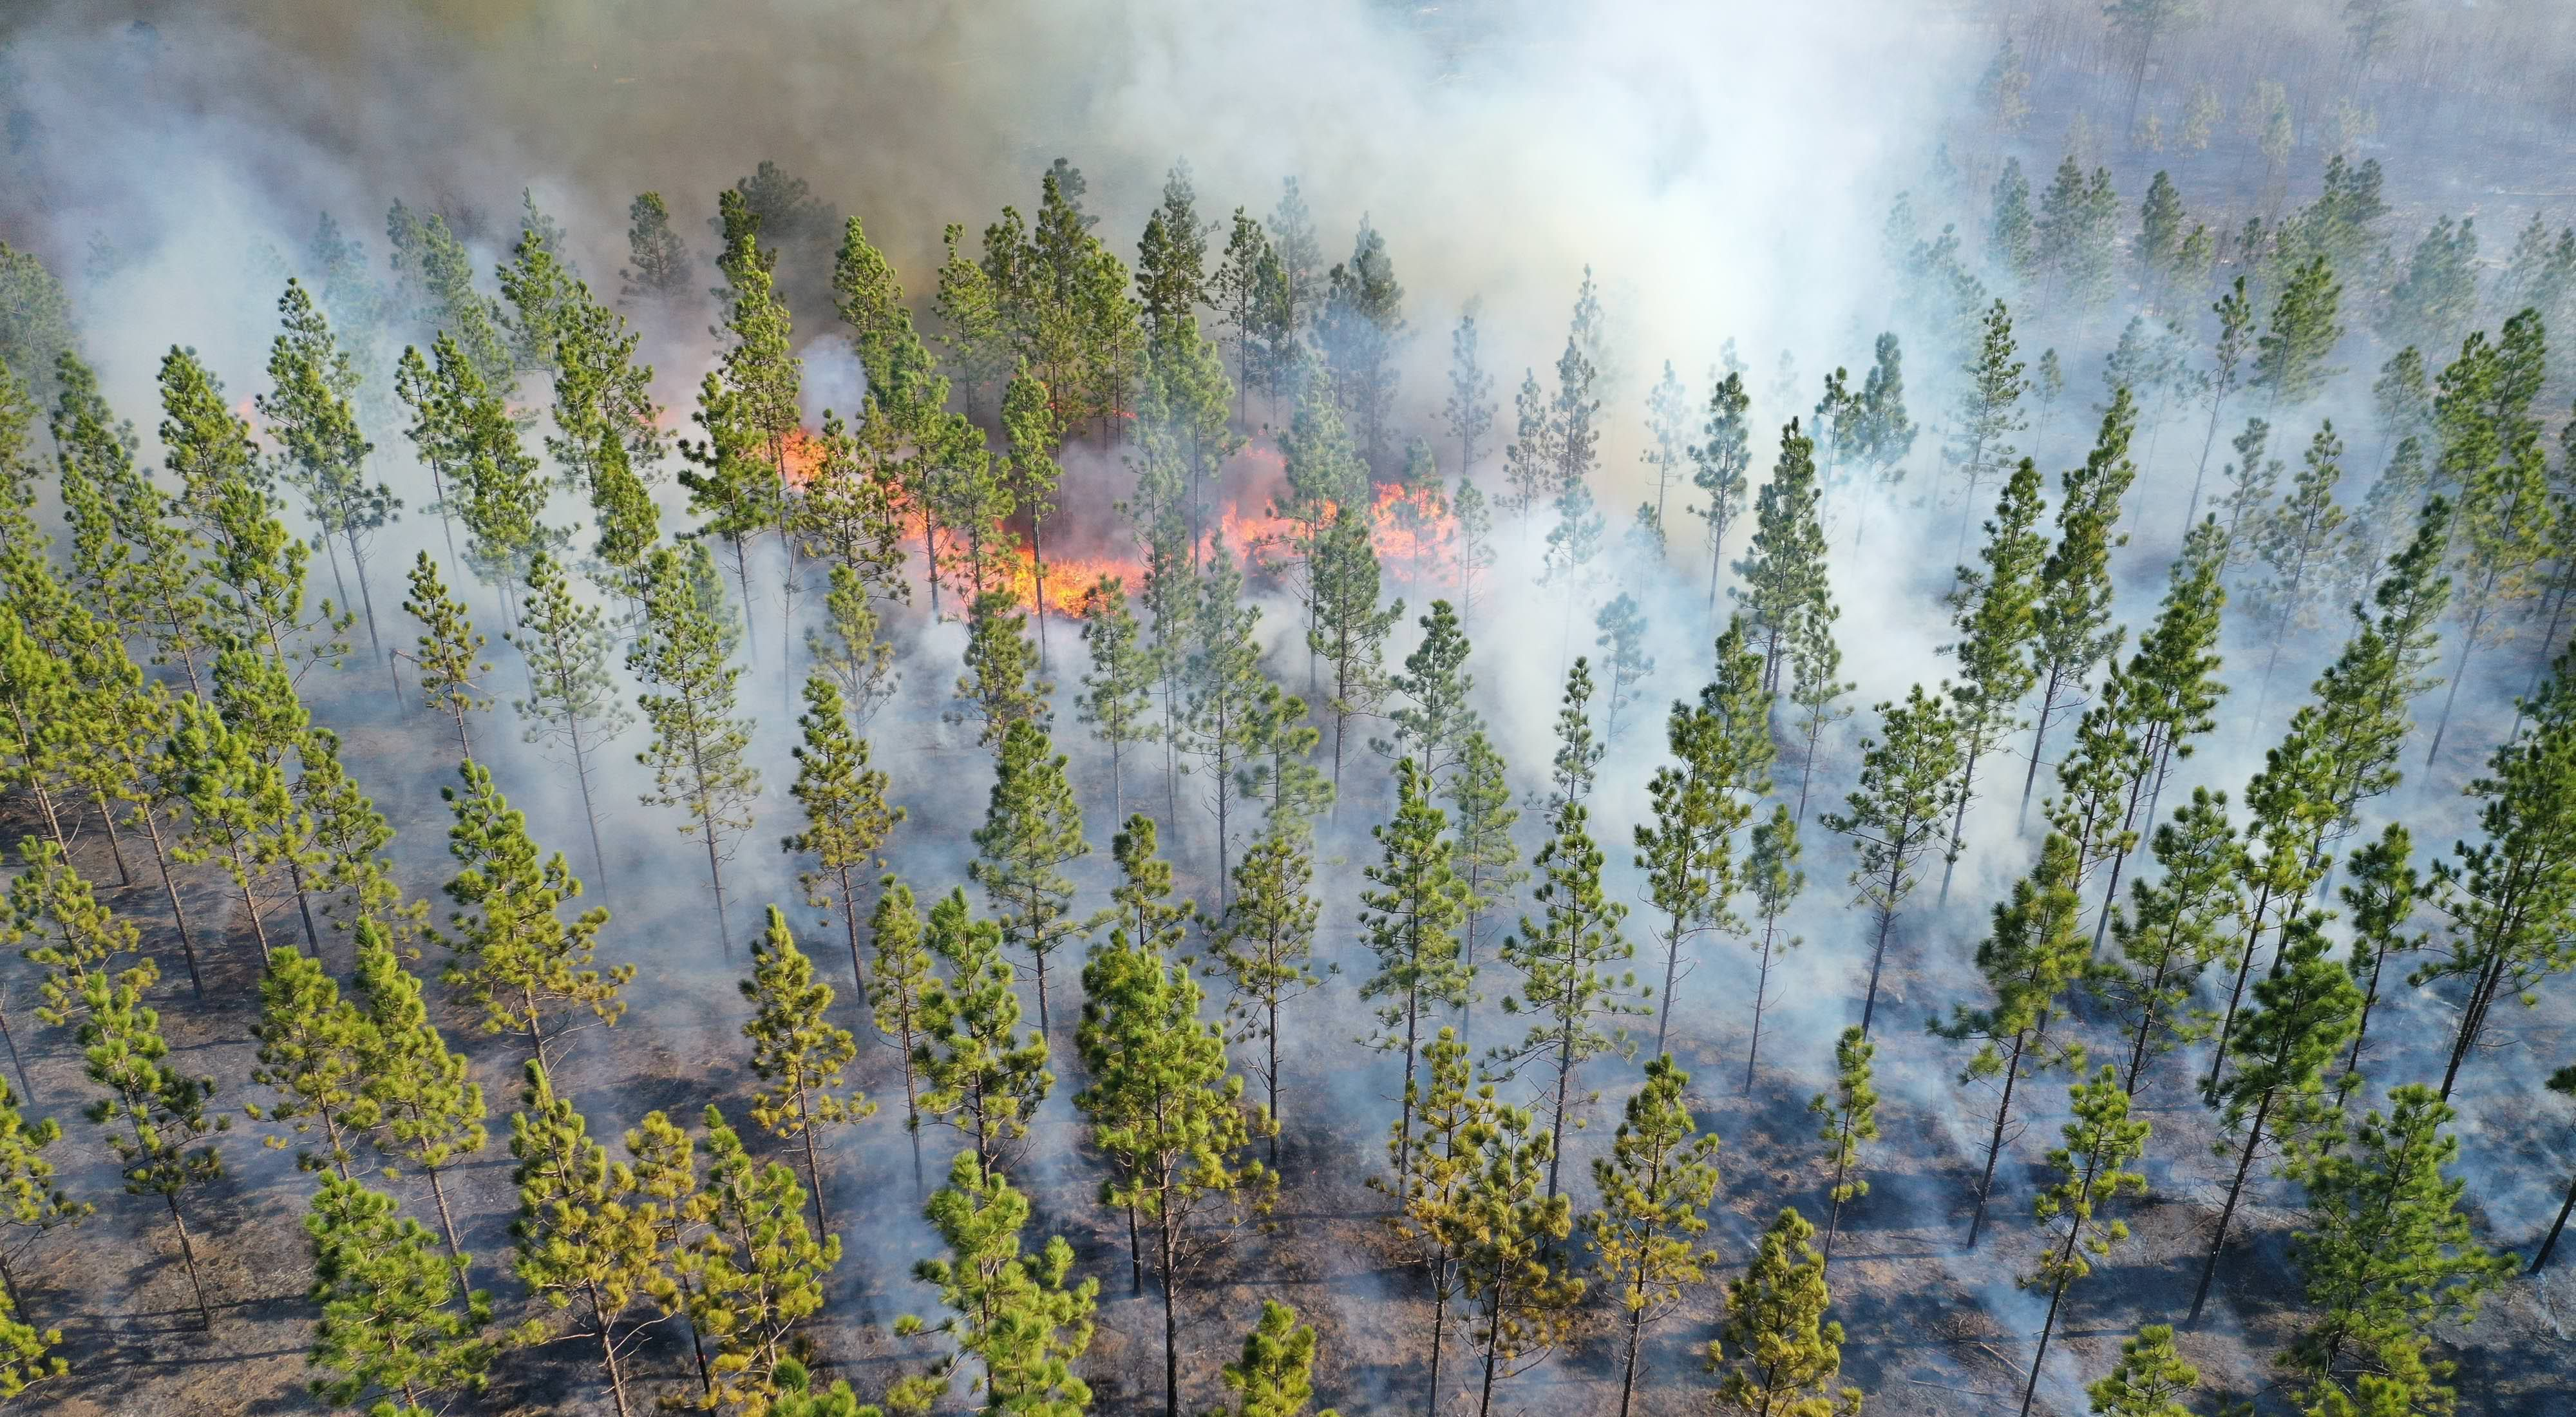 A controlled burn at TNC's Calloway Forest Preserve